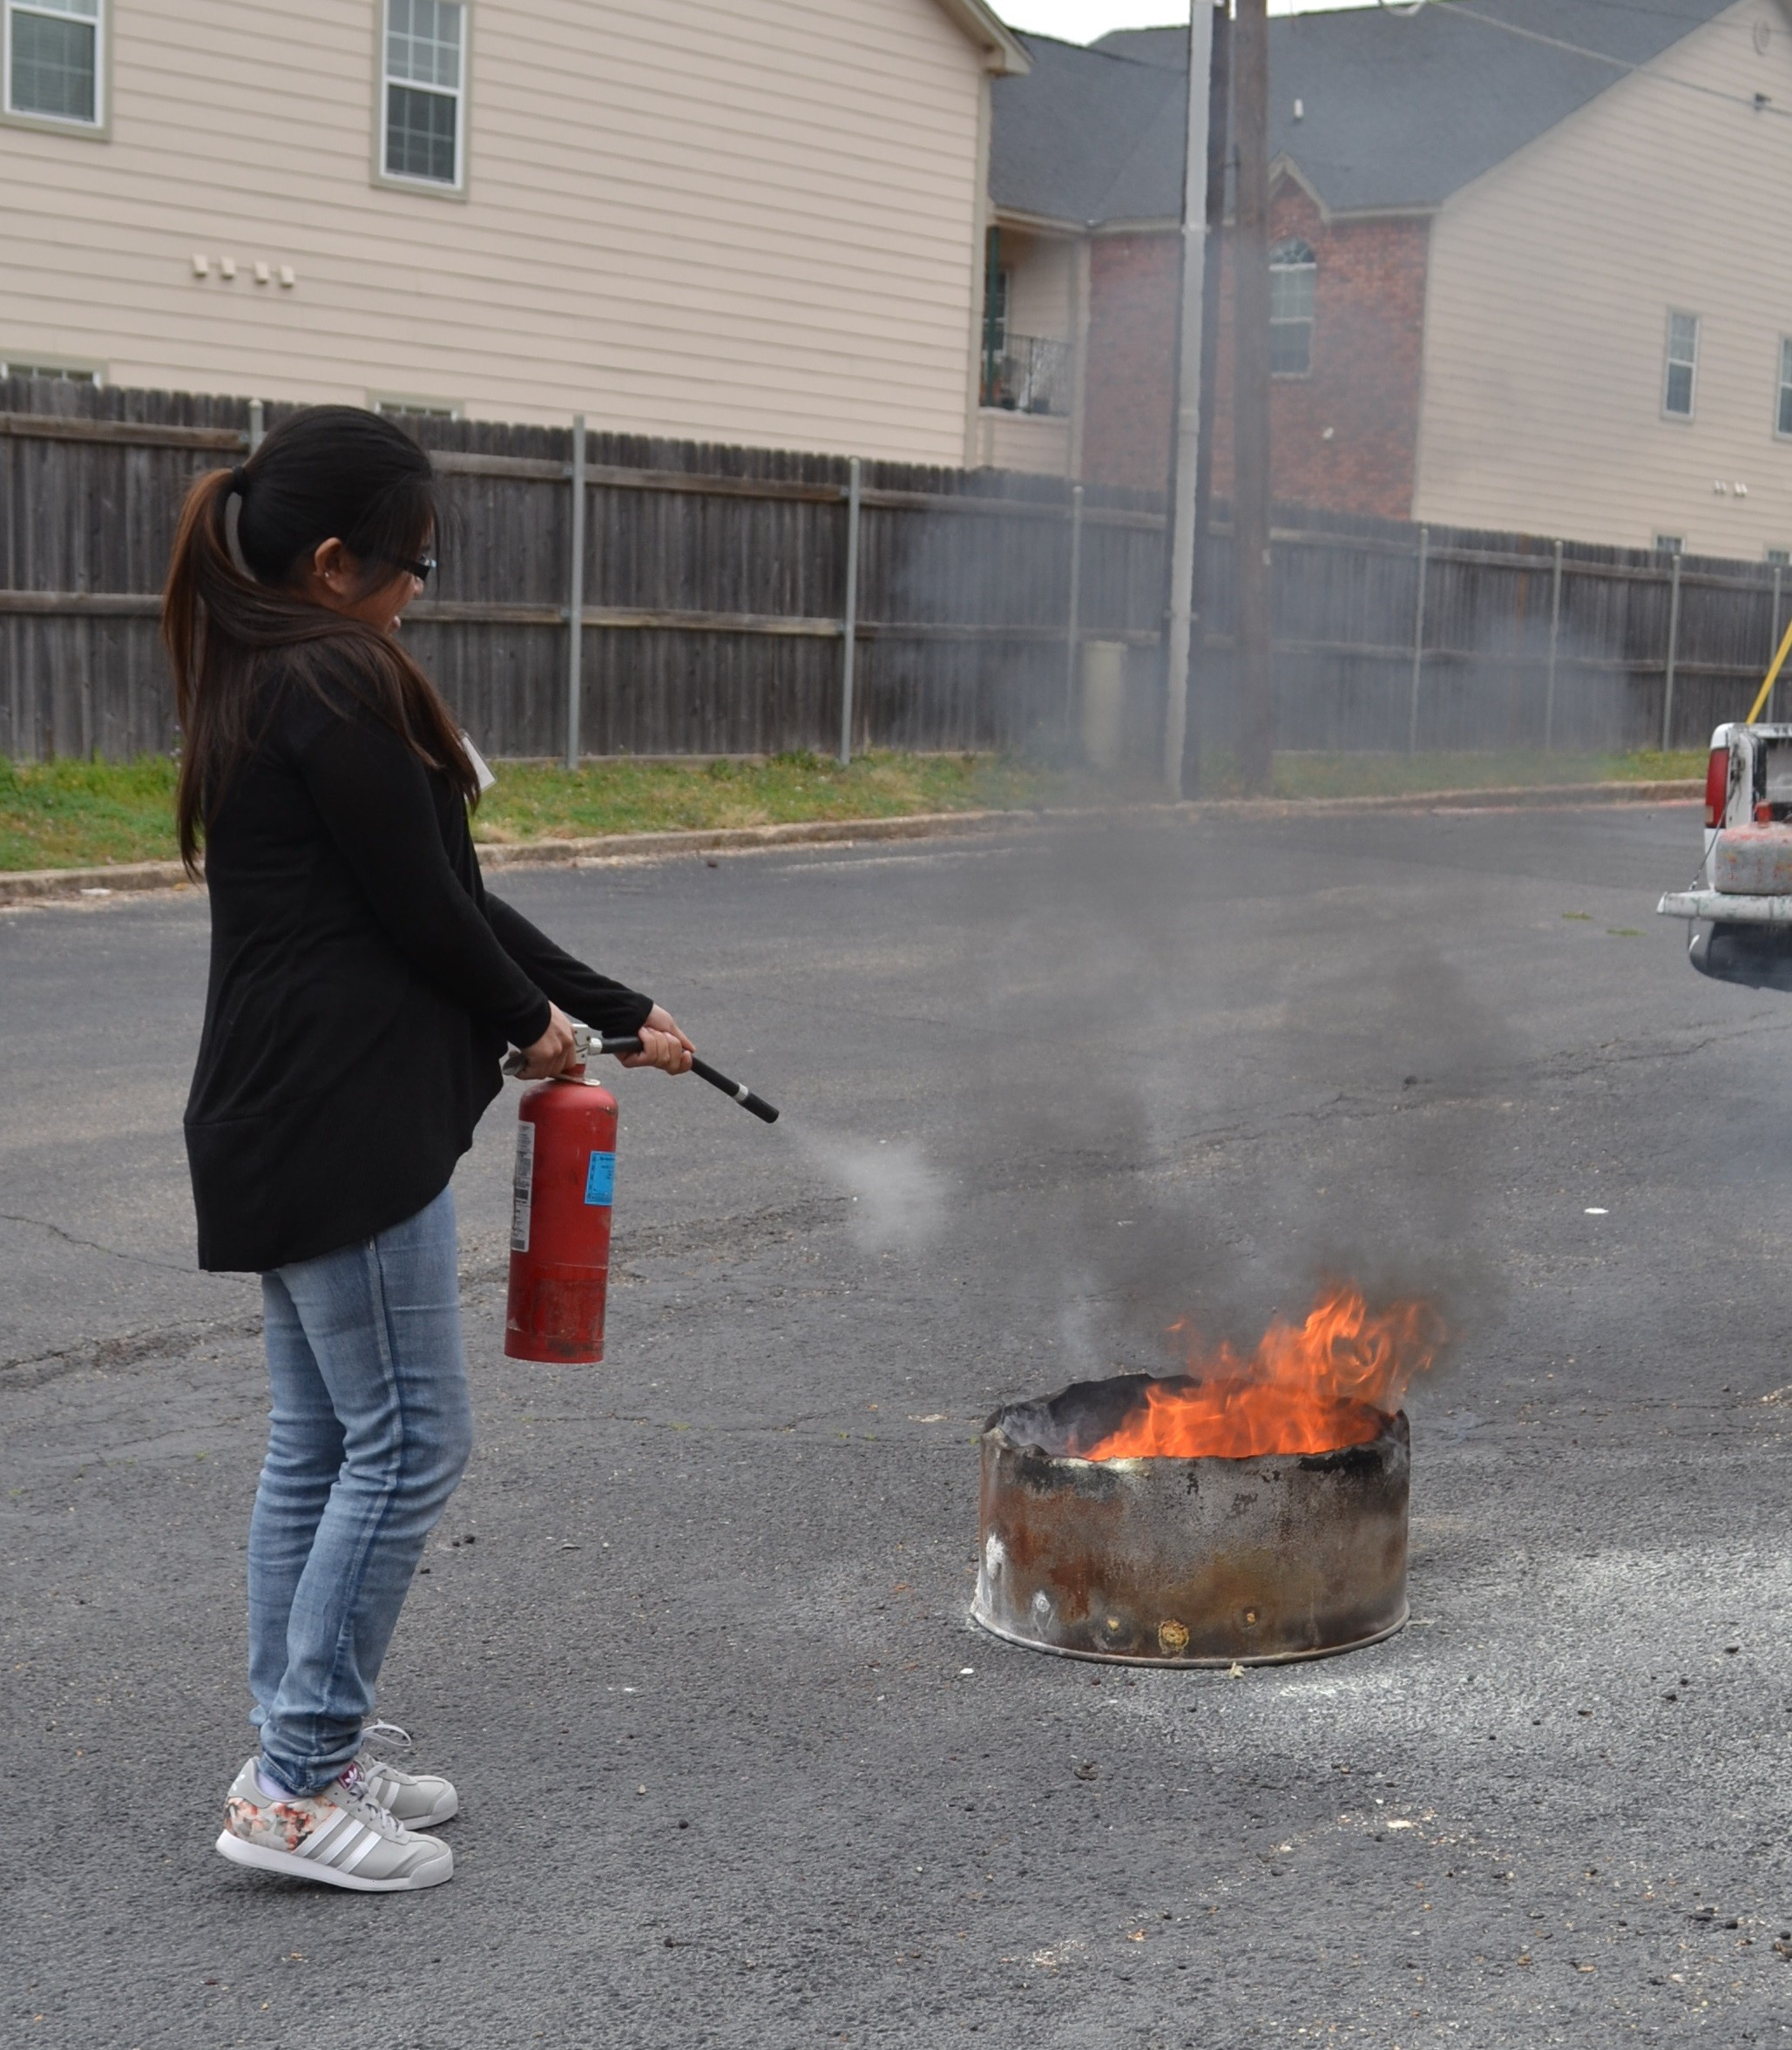 Firefighters know how to extinguish a fire 5